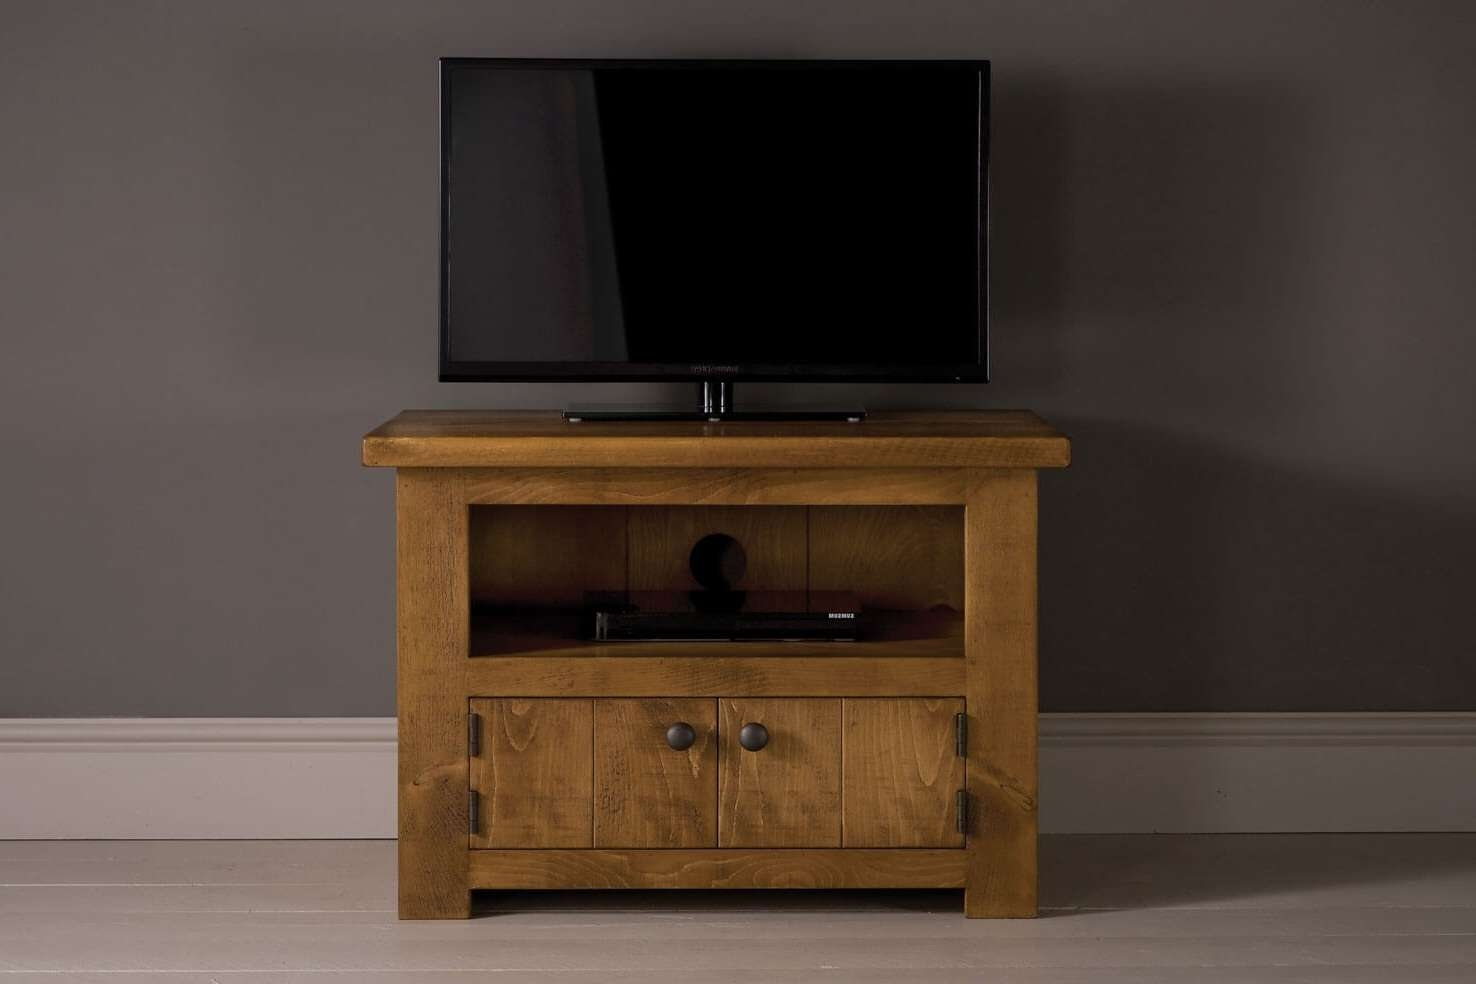 Rustic Tv Cabinets, Stands & Units | Solid Wood & Oak | Indigo Throughout Small Tv Cabinets (View 11 of 20)